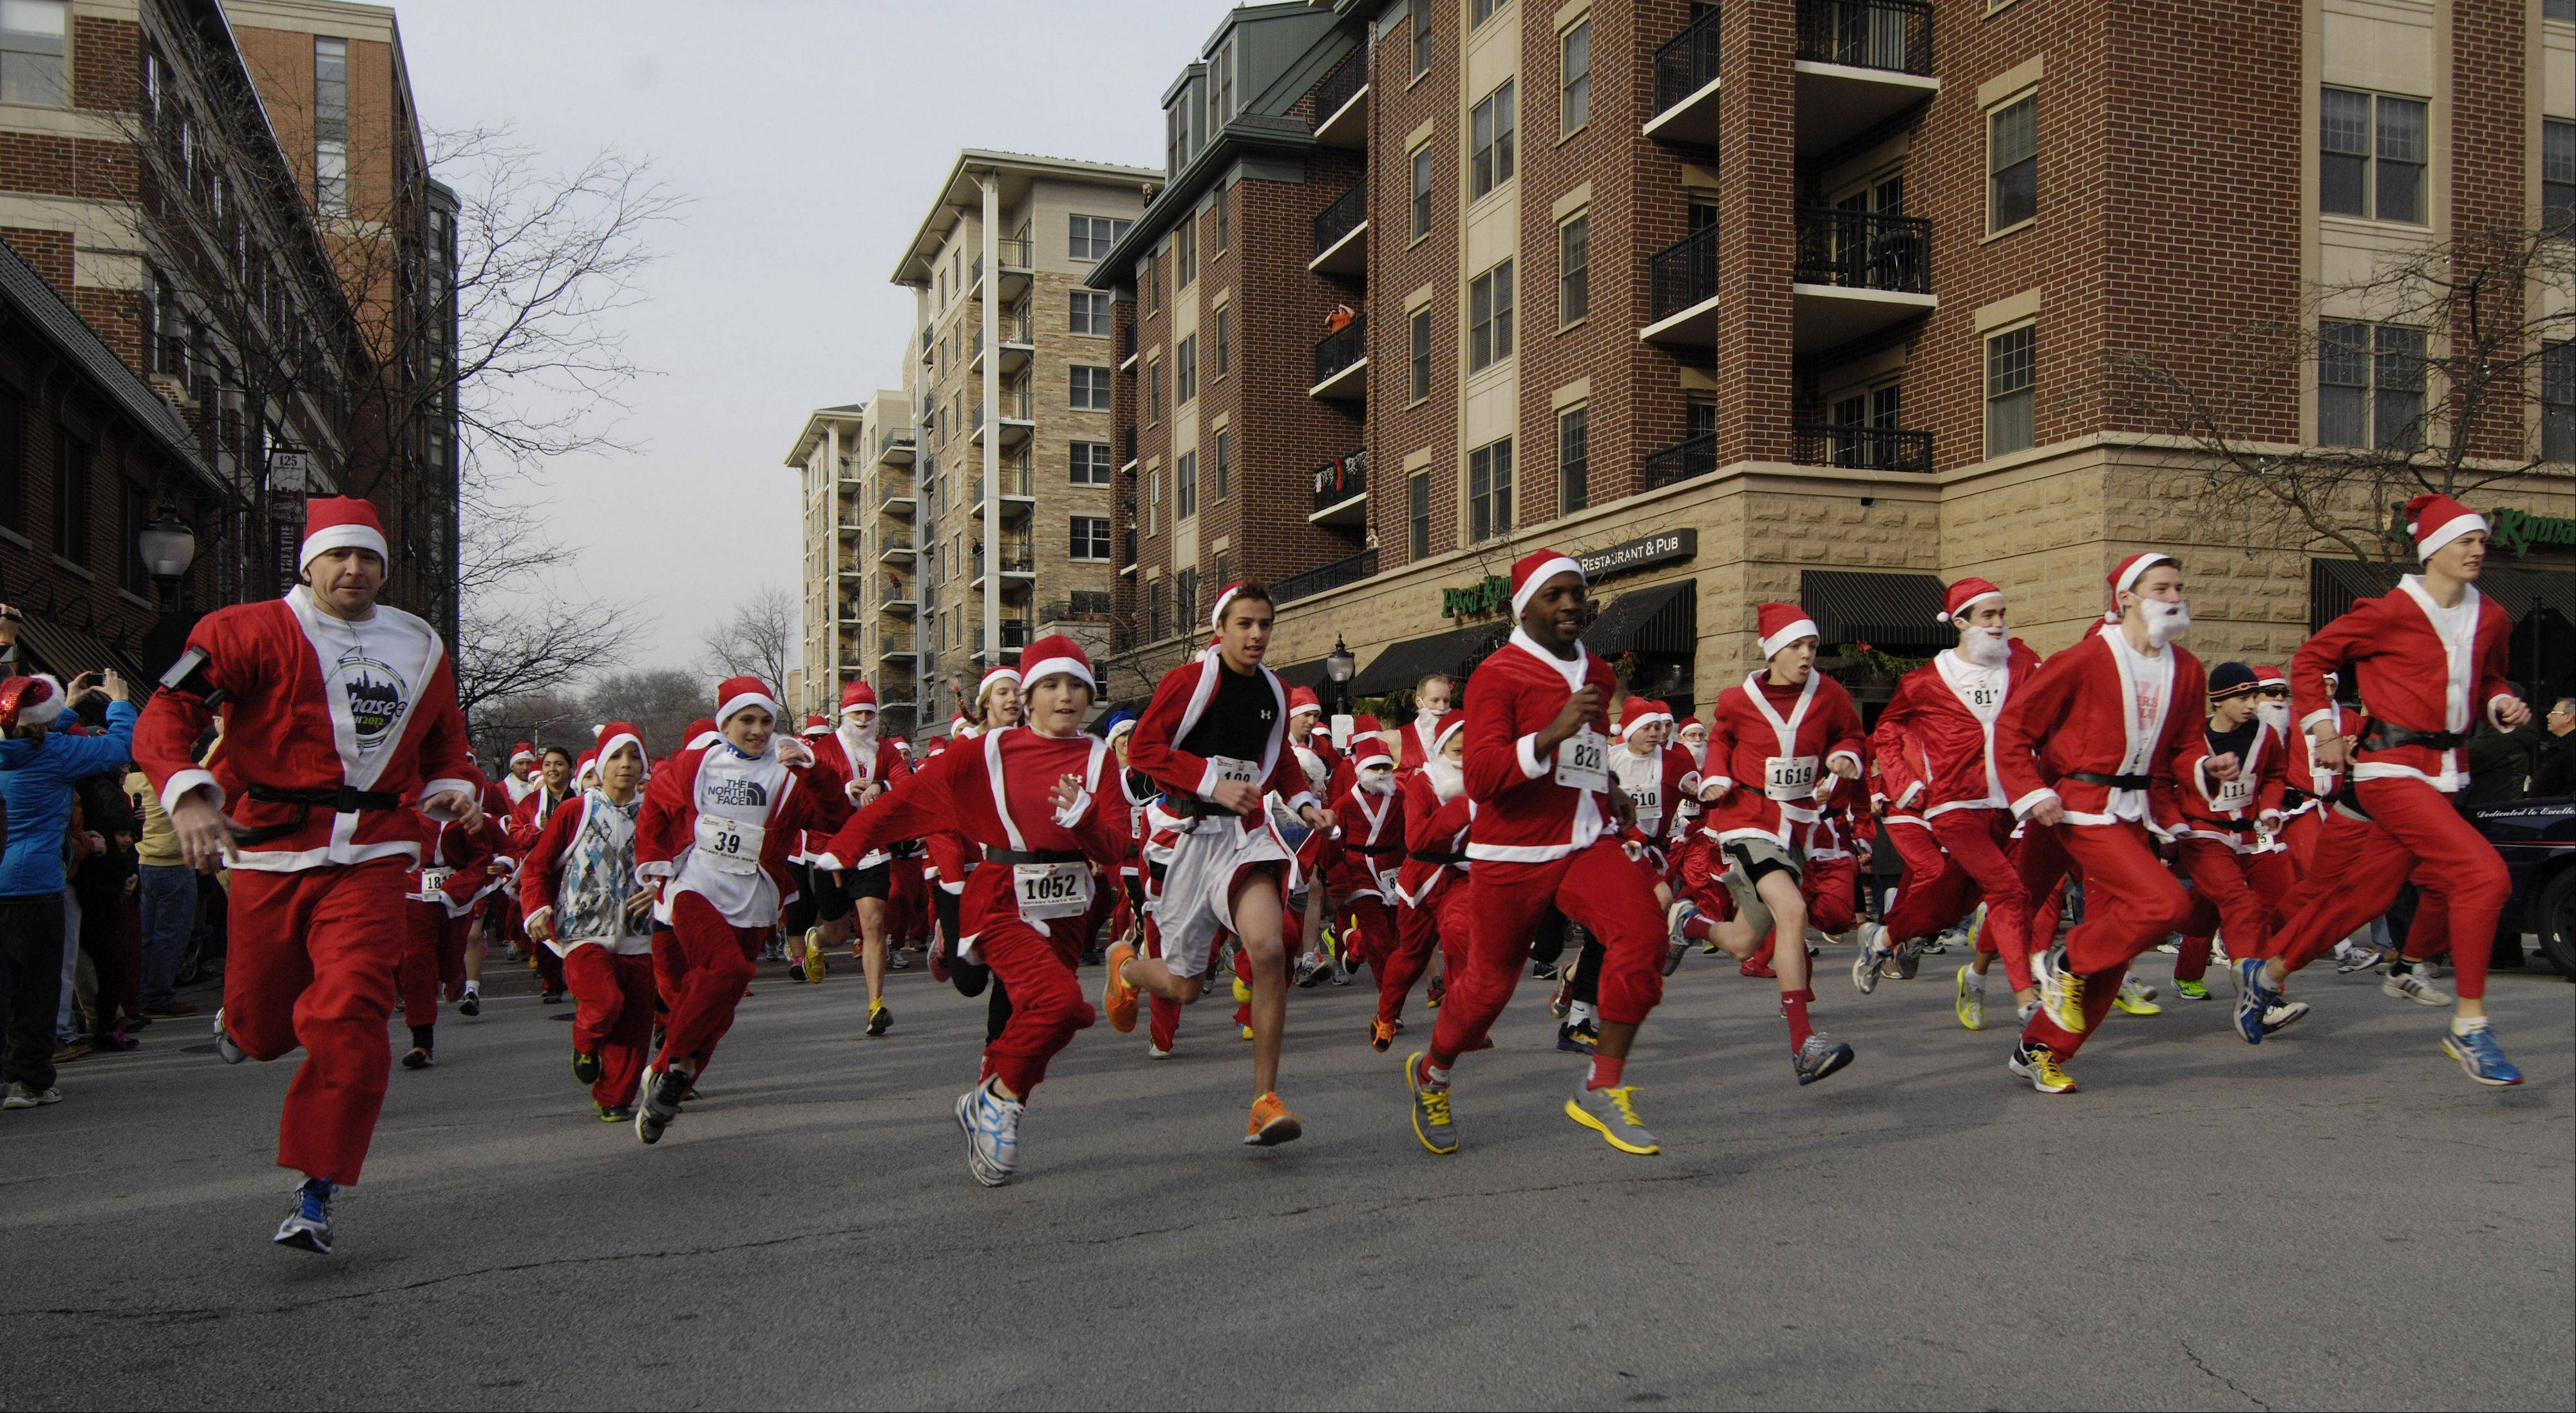 Runners leave the starting line during Saturday's 5k Santa Run in Arlington Heights.